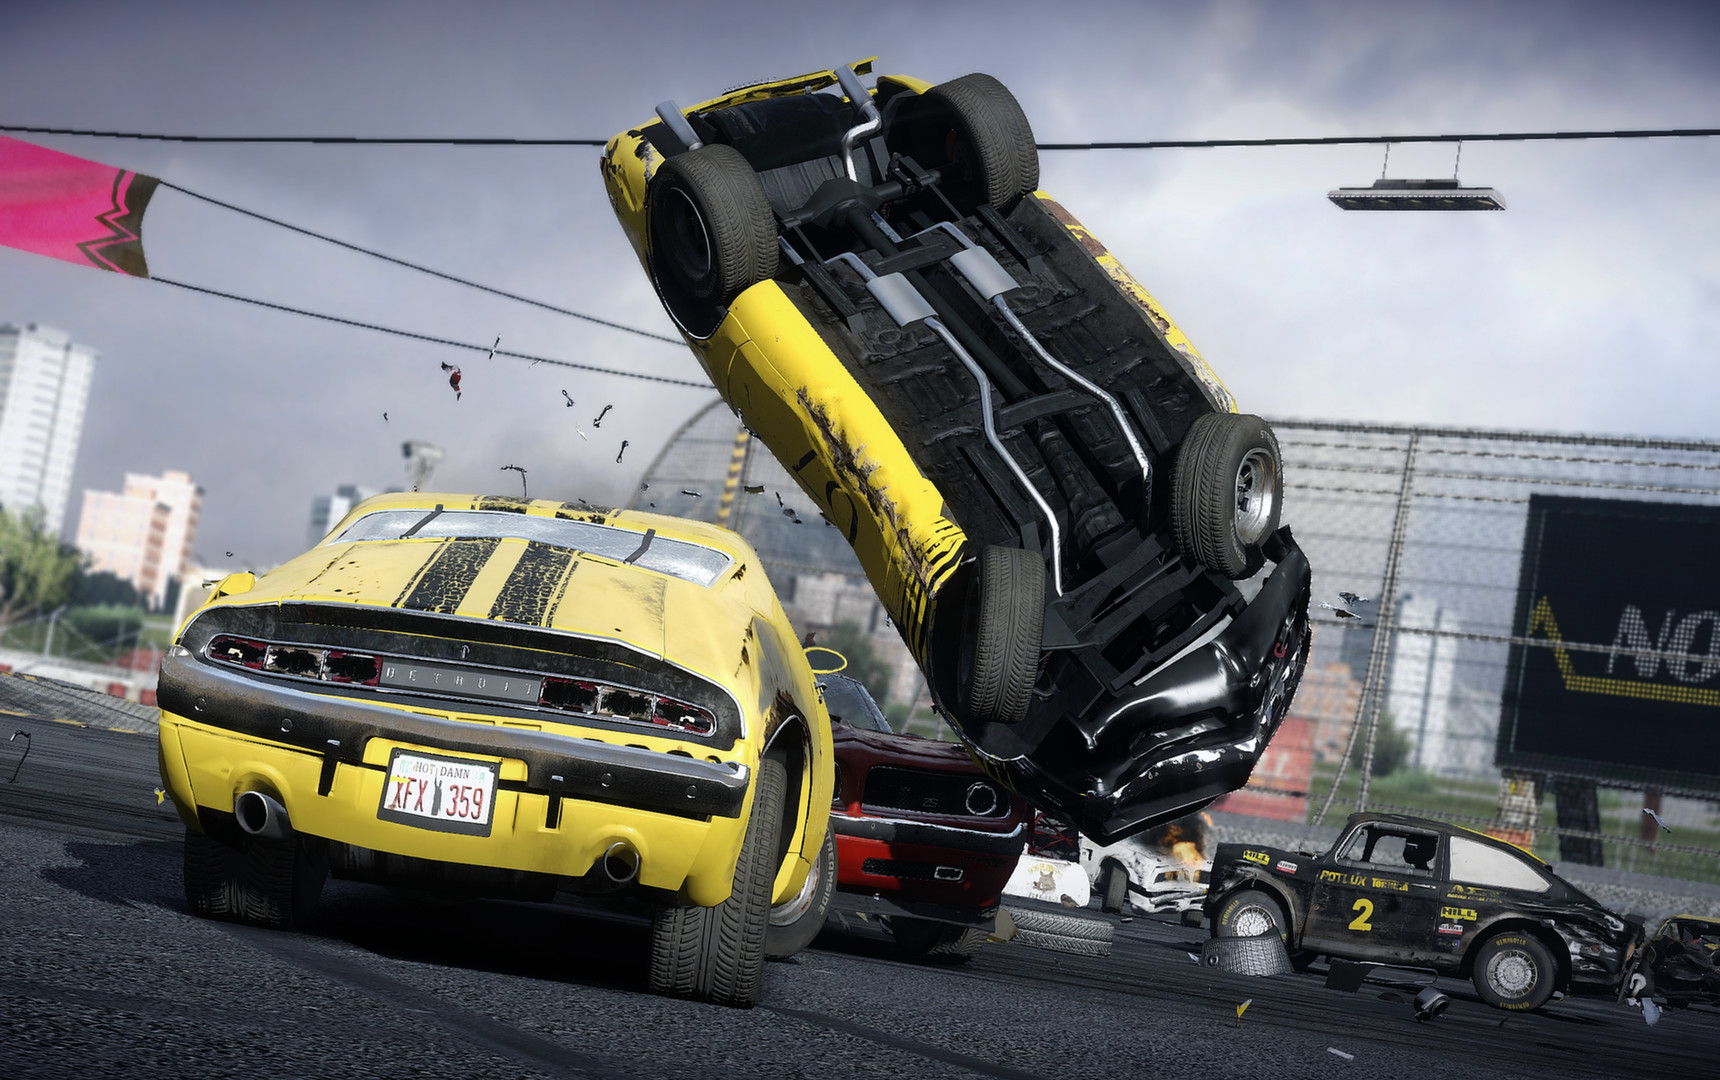 Next Car Game Wreckfest Windows Indie DB - Cool car games